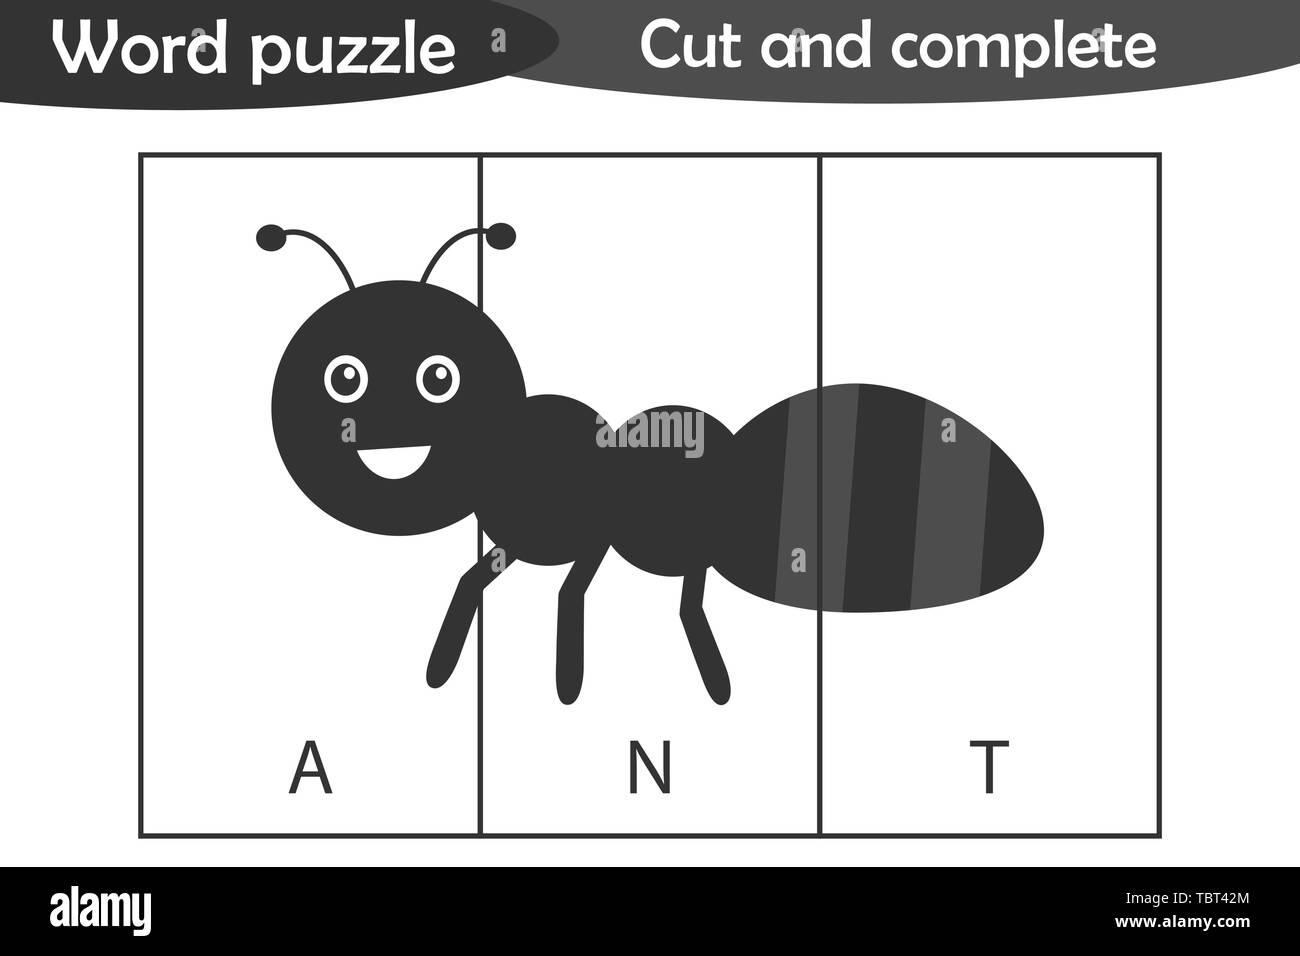 Word puzzle, ant in cartoon style, education game for development of preschool children, use scissors, cut parts of the image and complete the picture - Stock Image